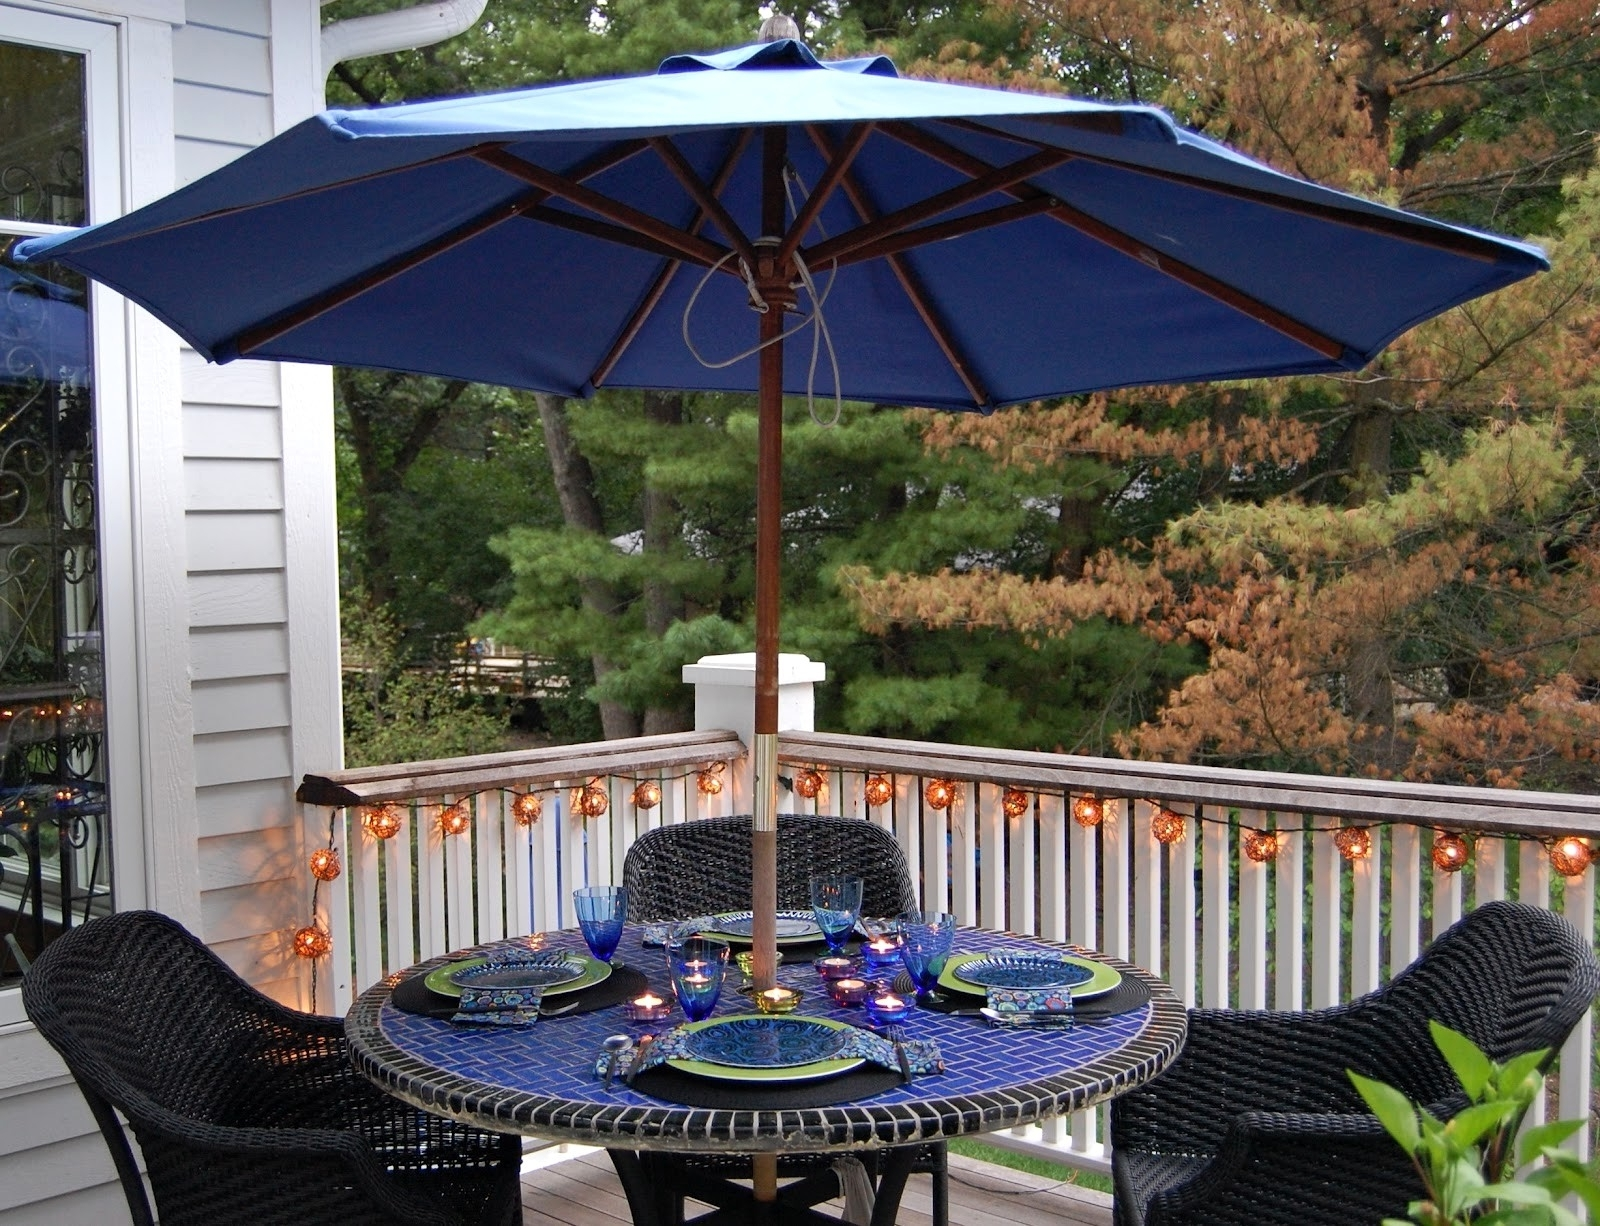 Patio Sets With Umbrellas With Widely Used Outdoor Patio Furniture Sets With Umbrella Enjoy Your Summer Time (Gallery 17 of 20)